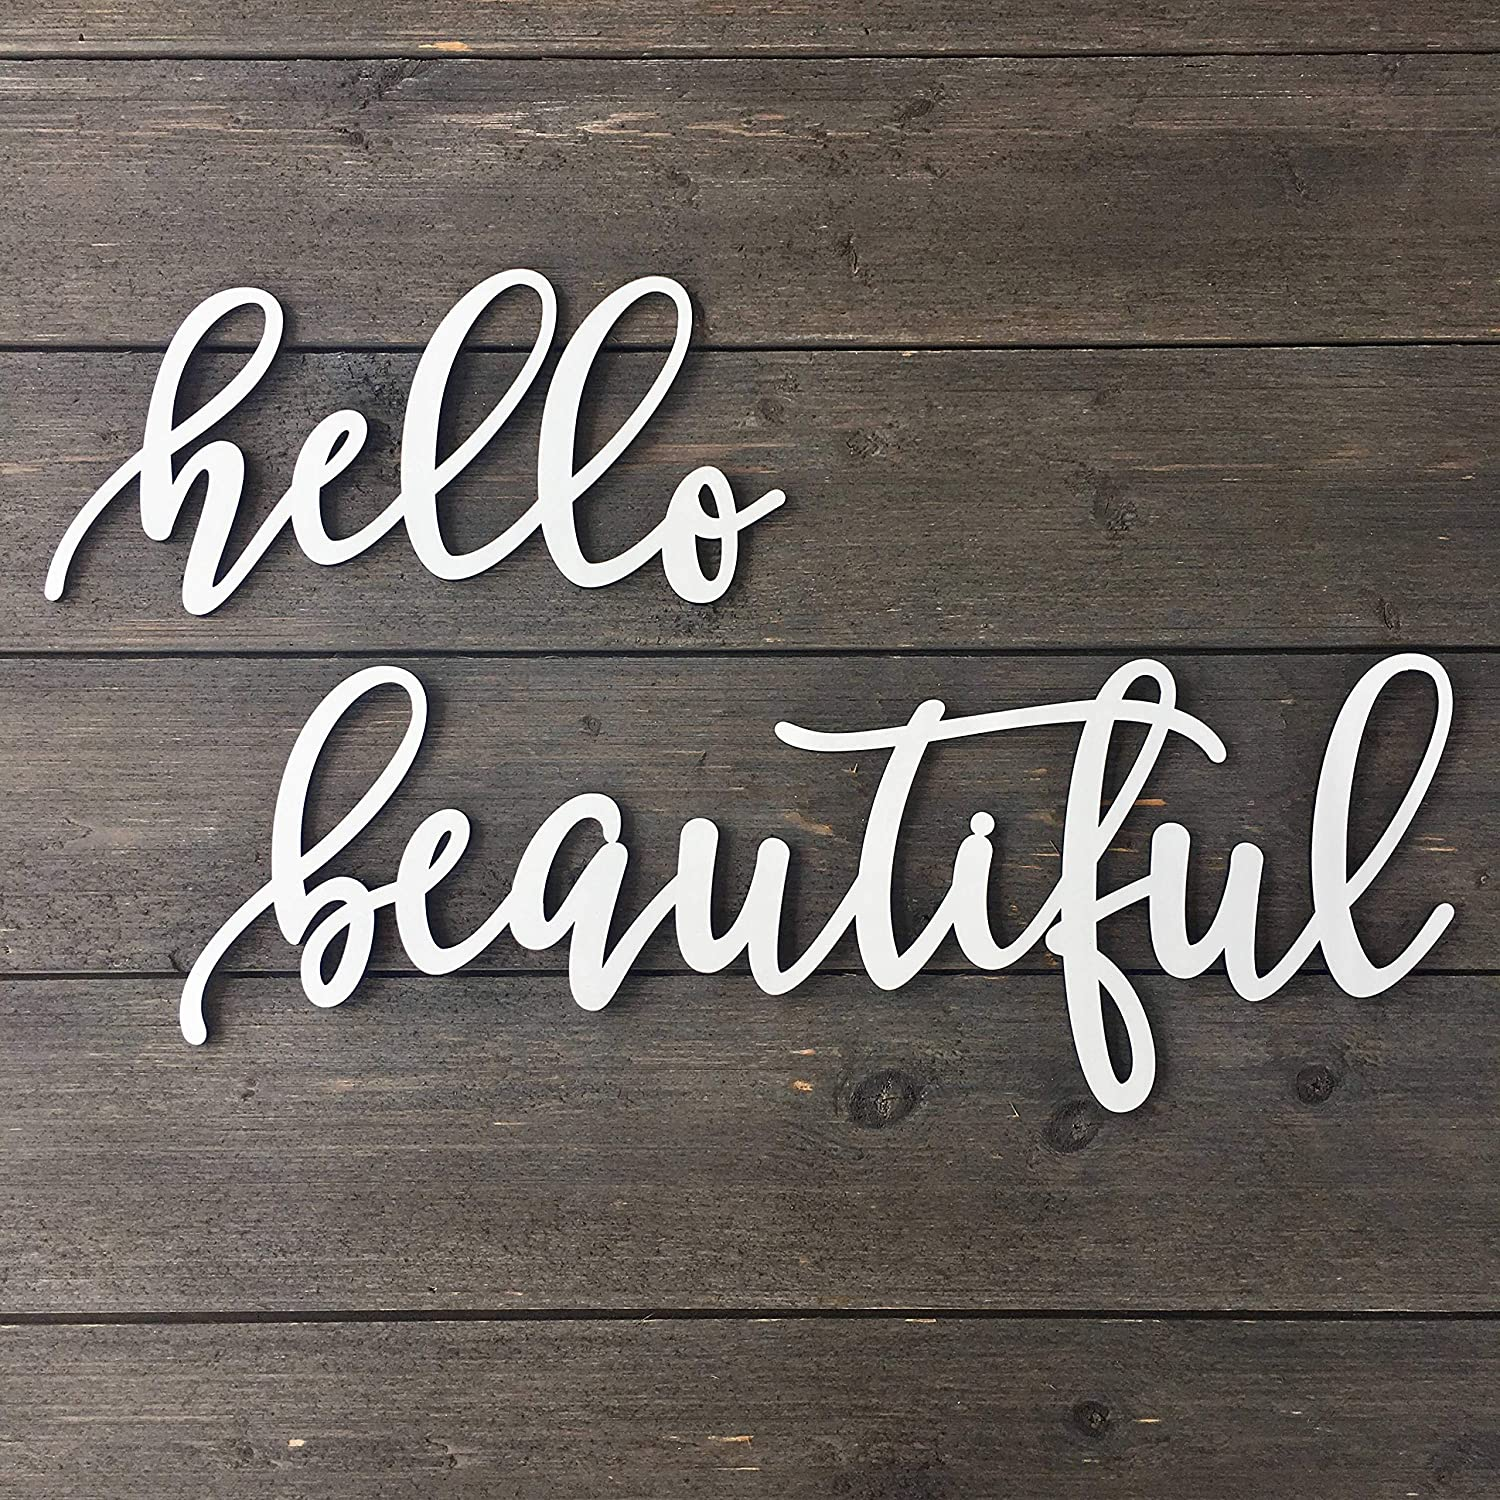 NOT BRANDED Hello Beautiful Wall Sign 24 inches Total lengthwidth Cutout No Backboard Wedding Sign Wooden Sign Nursery Girl Room Office Home Baby